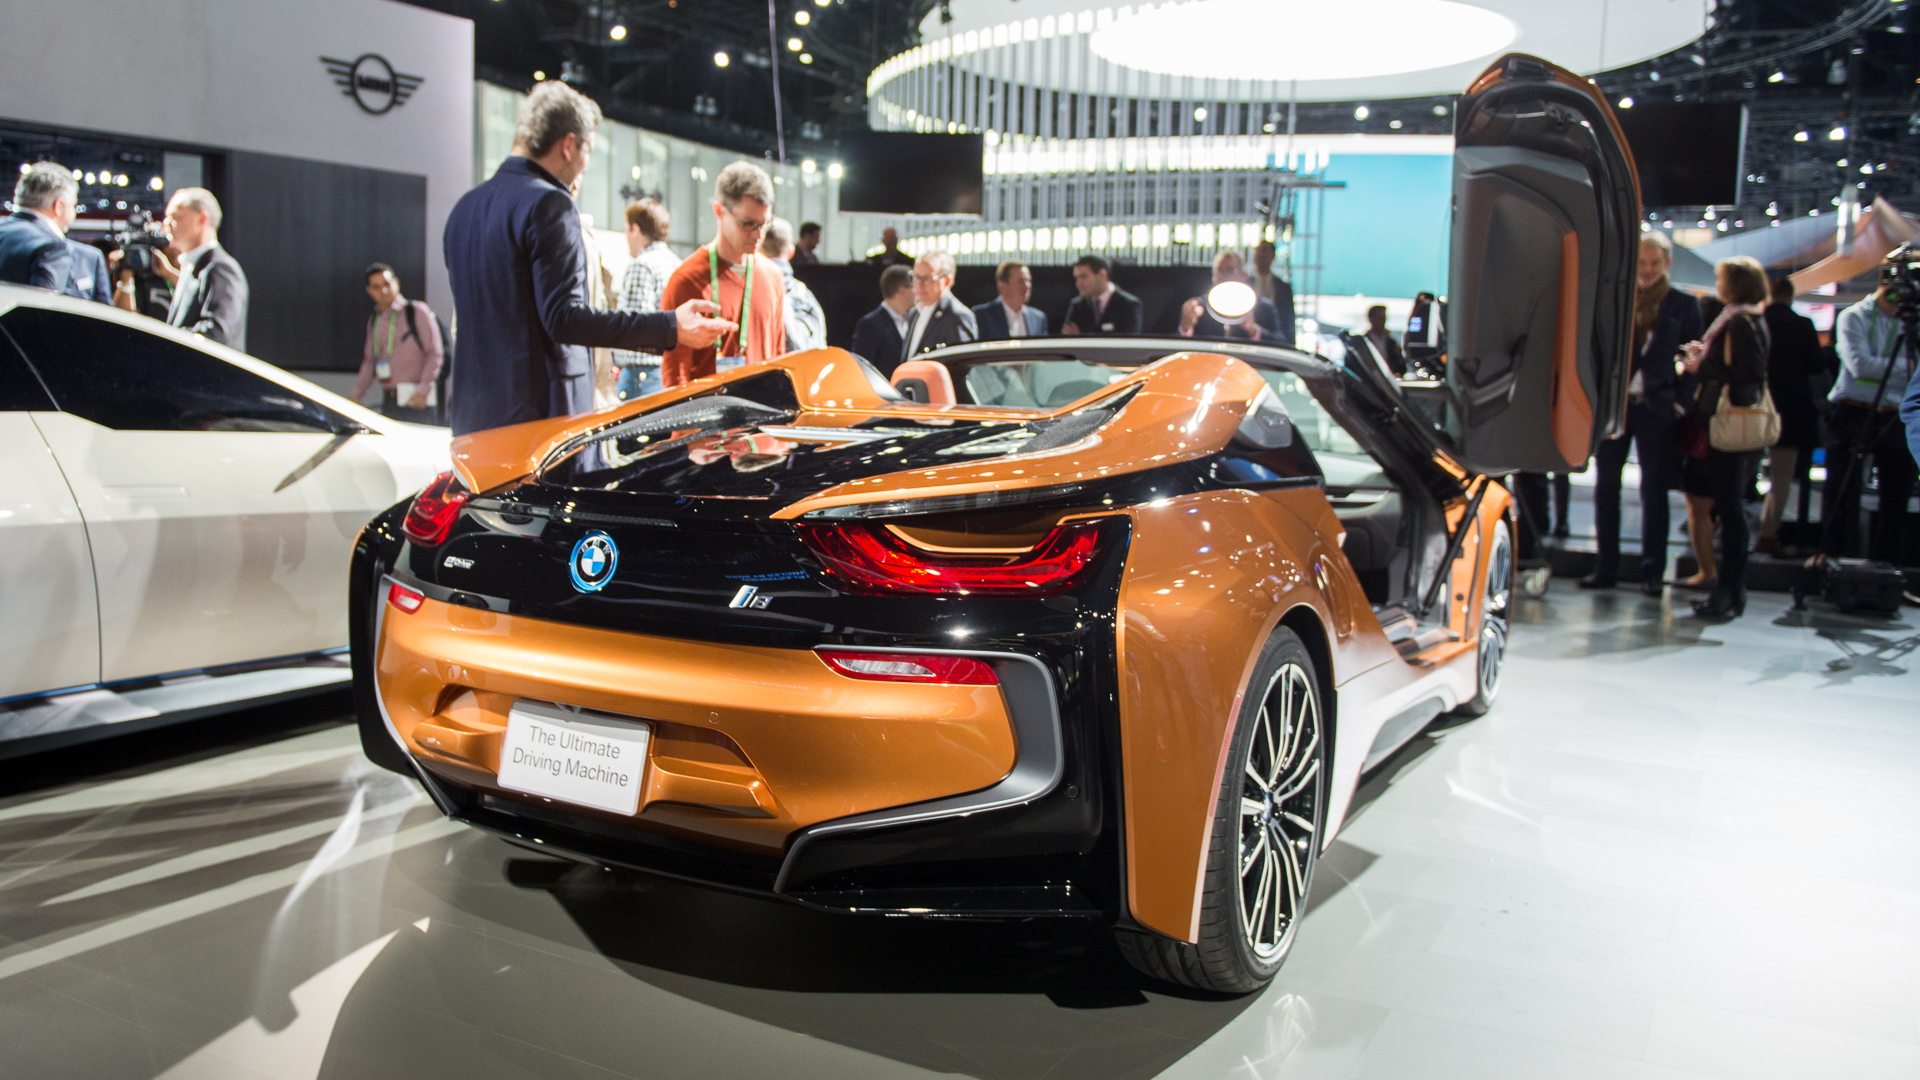 2019 BMW i8 Roadster, 2017 Los Angeles Auto Show